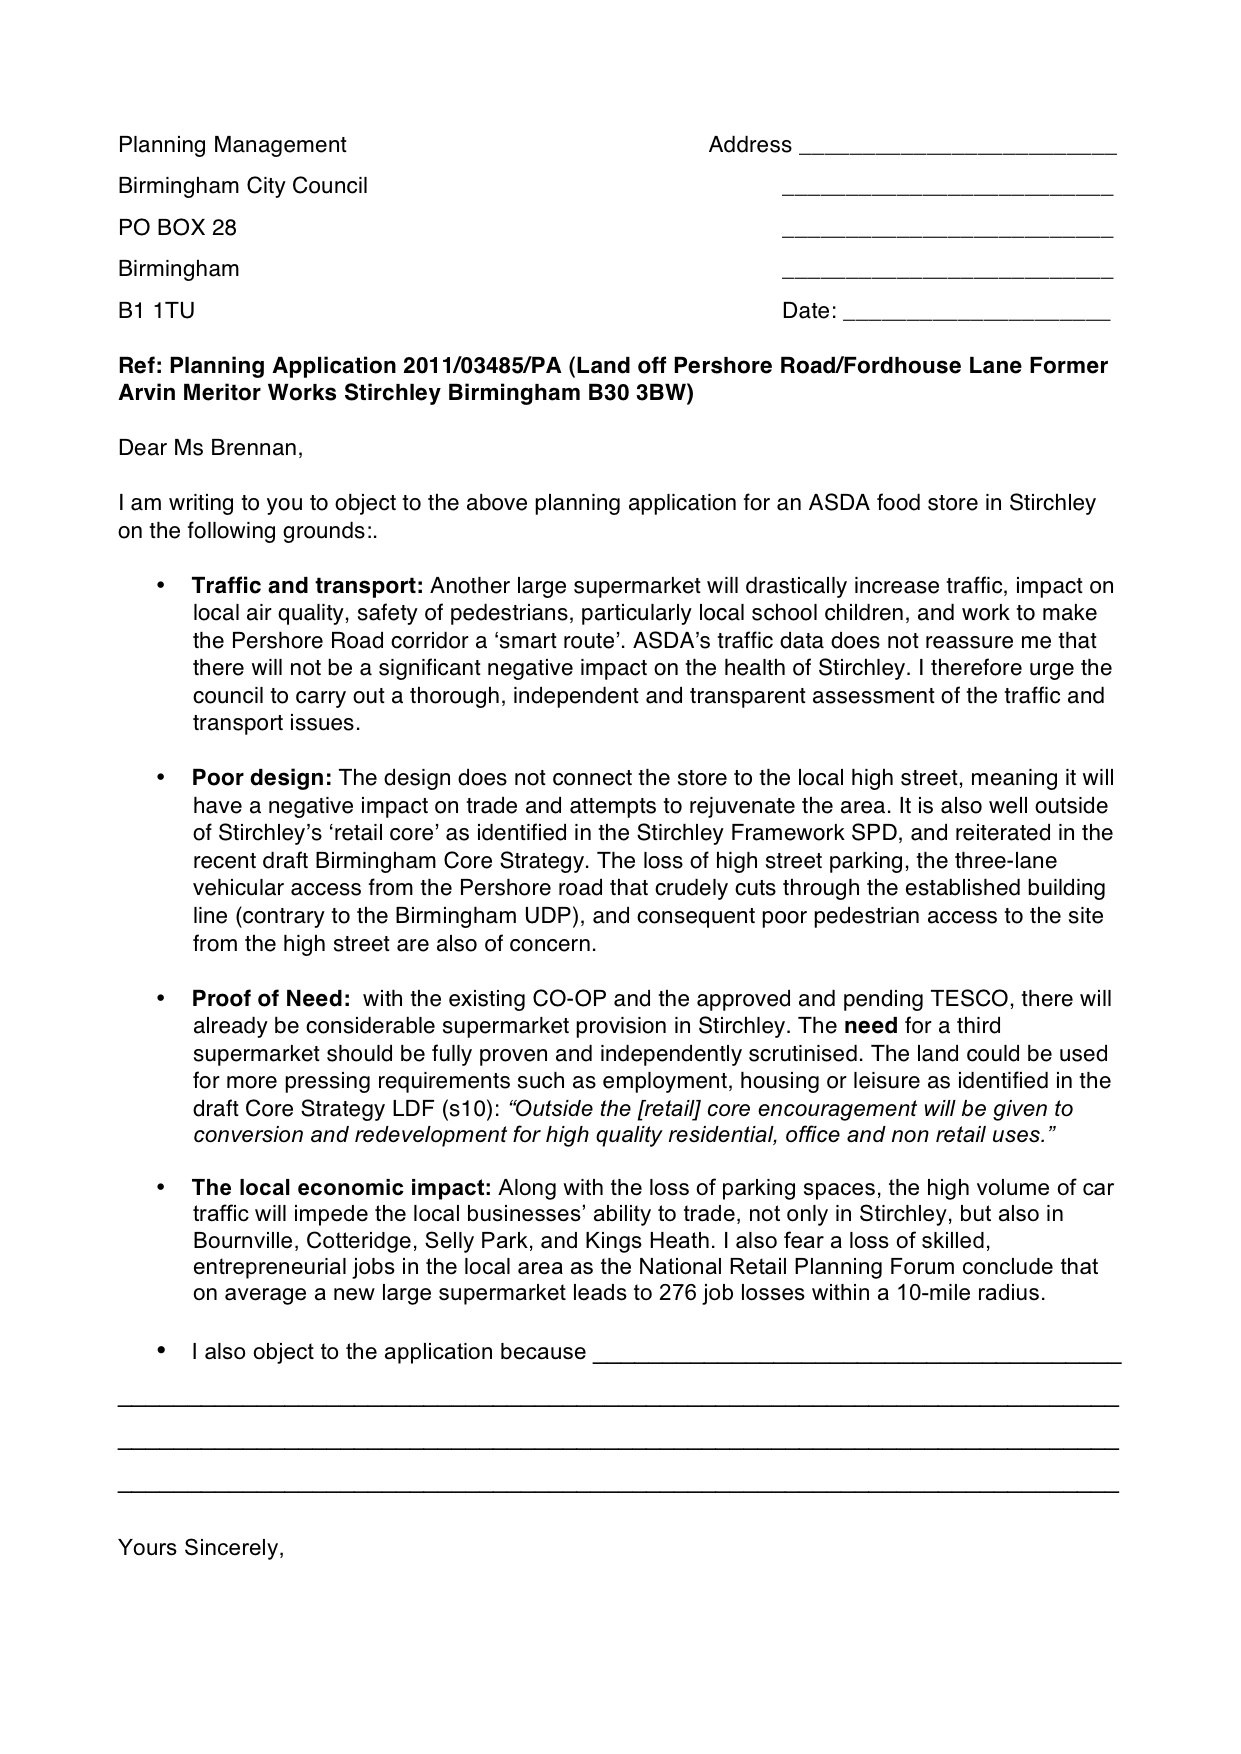 Objection Letter Template  Super Stirchley With Letter Of Objection Template